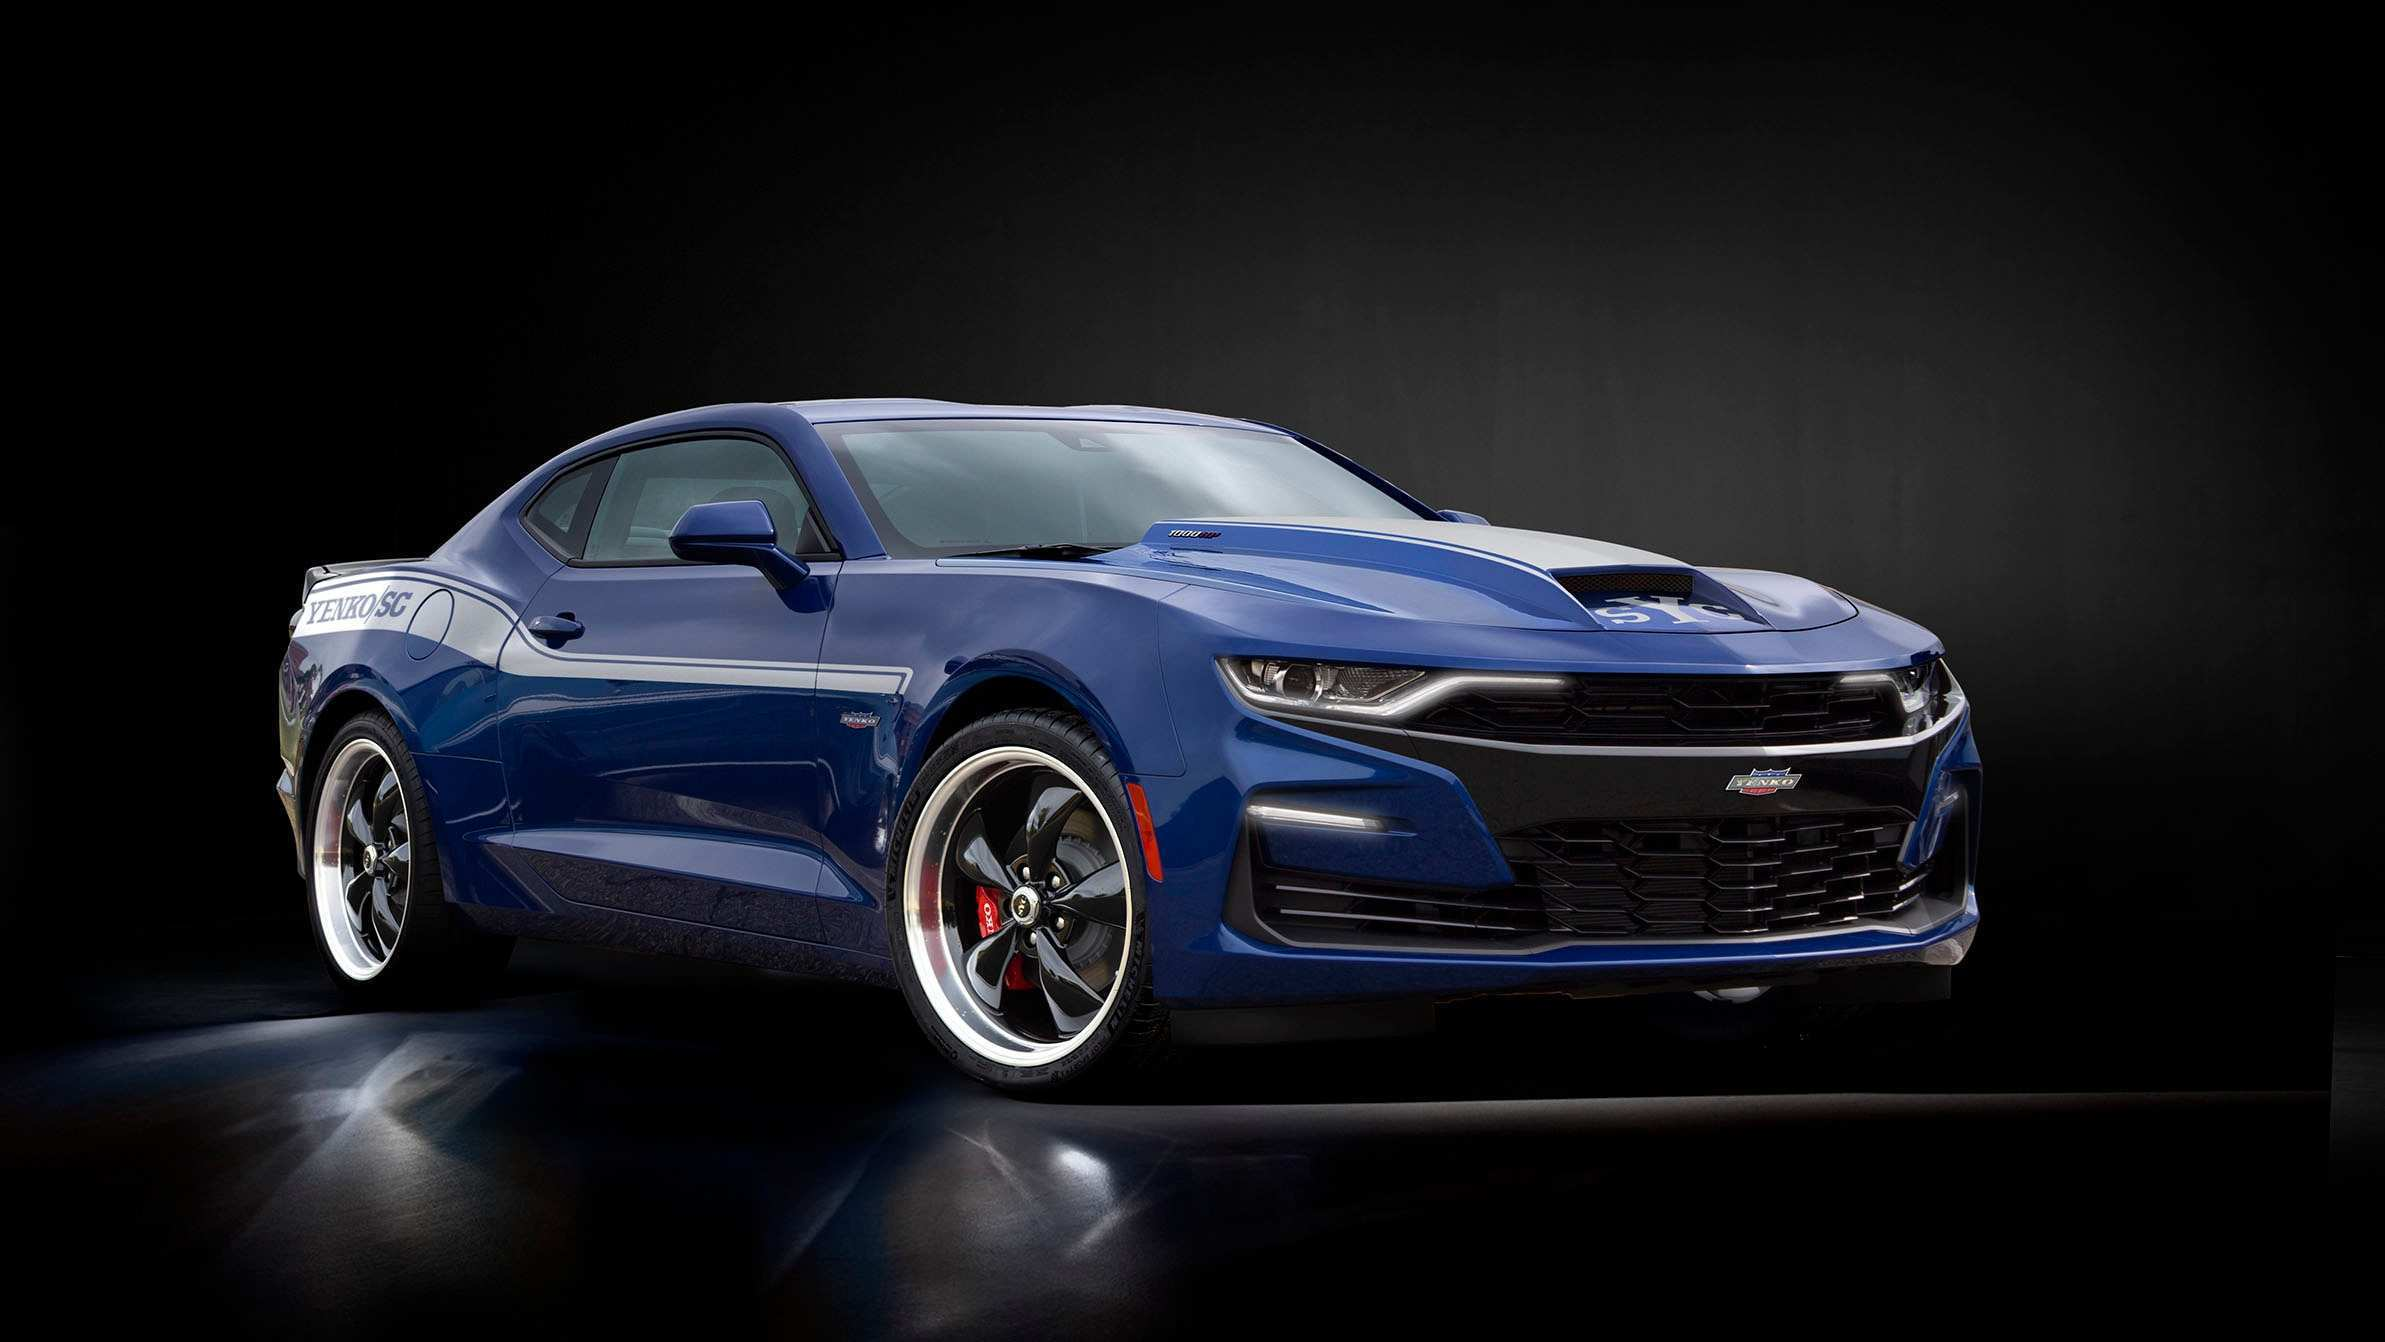 39 All New 2019 Camaro Z28 Horsepower Specs And Review